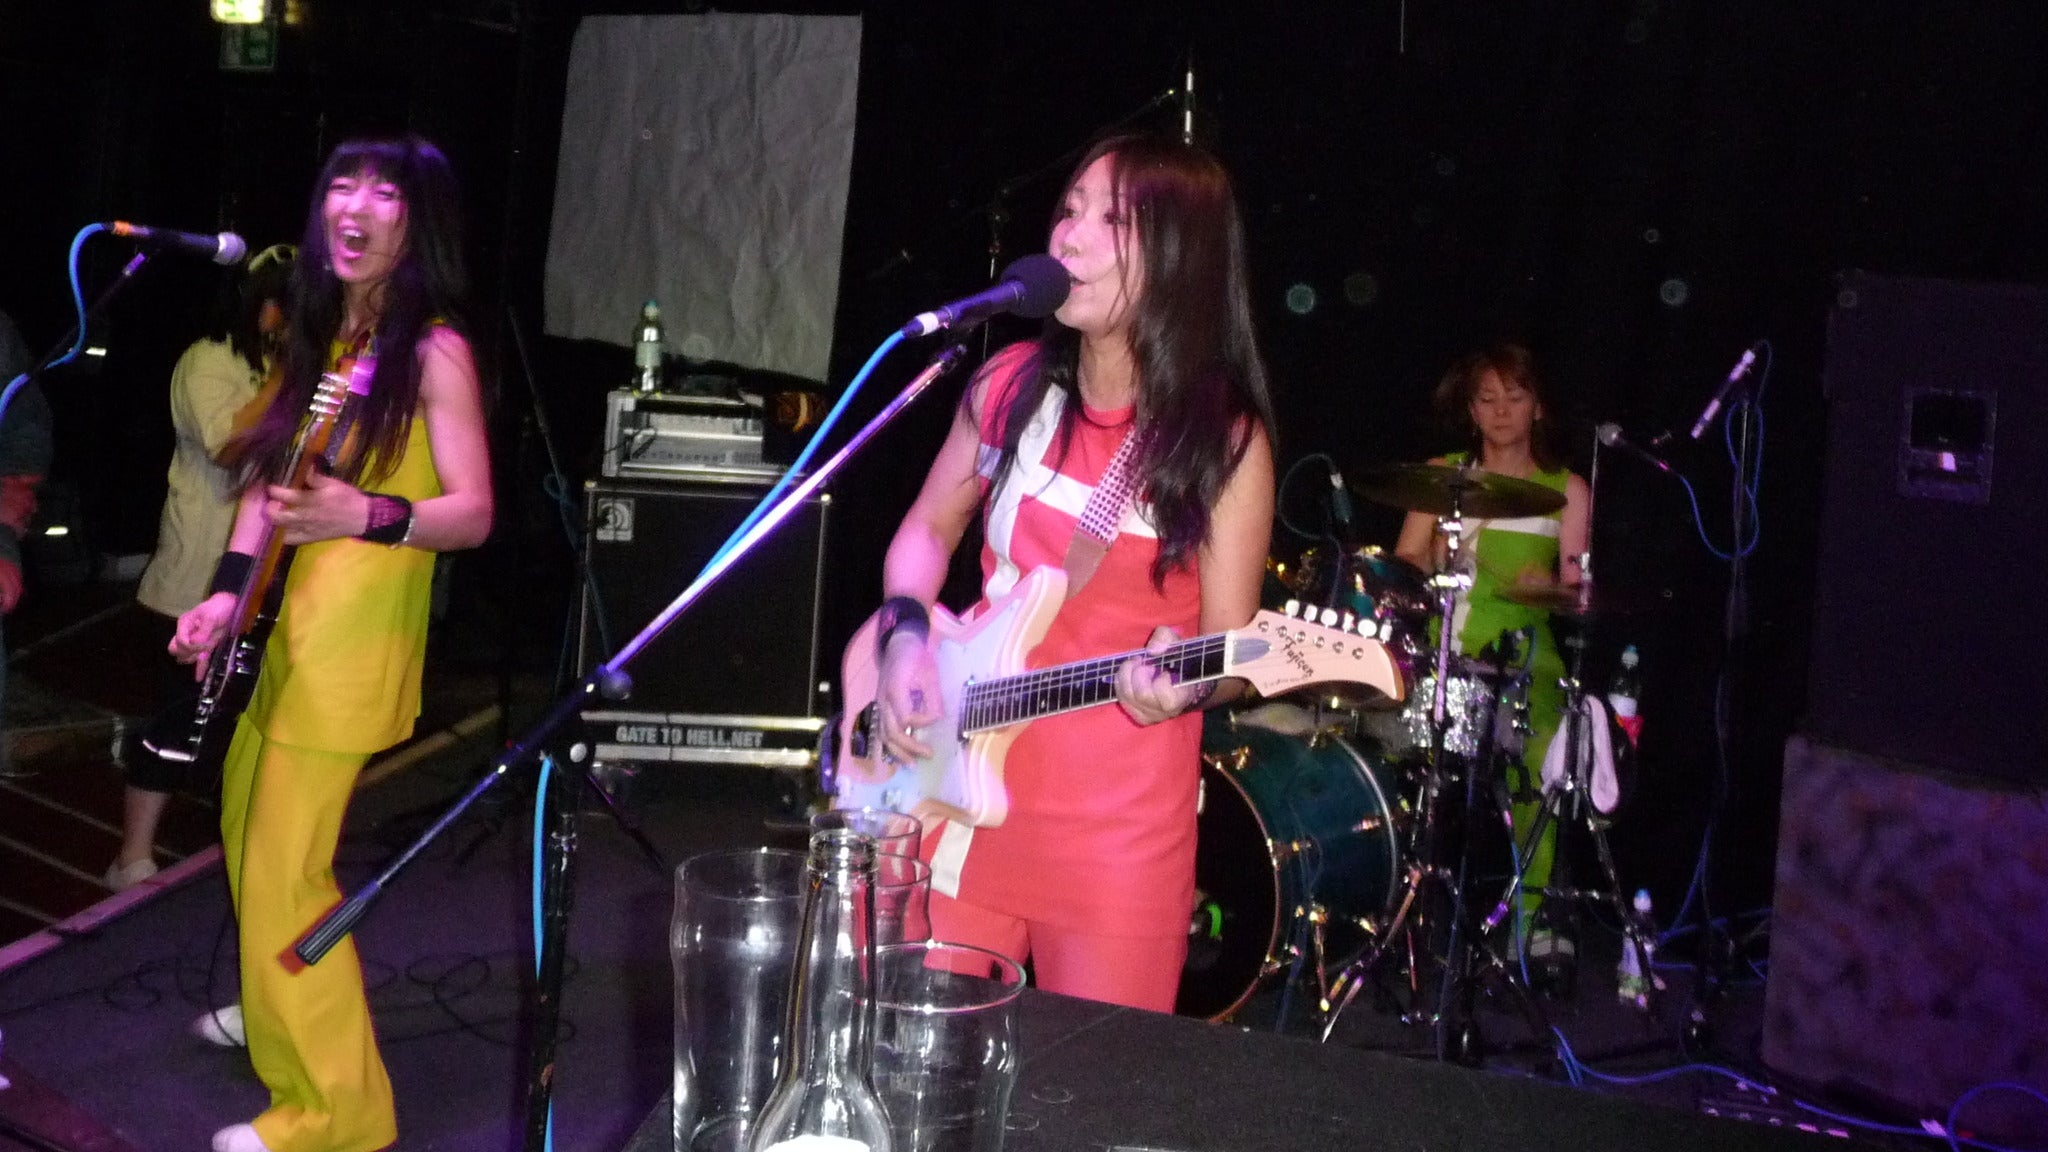 Shonen Knife at 191 Toole